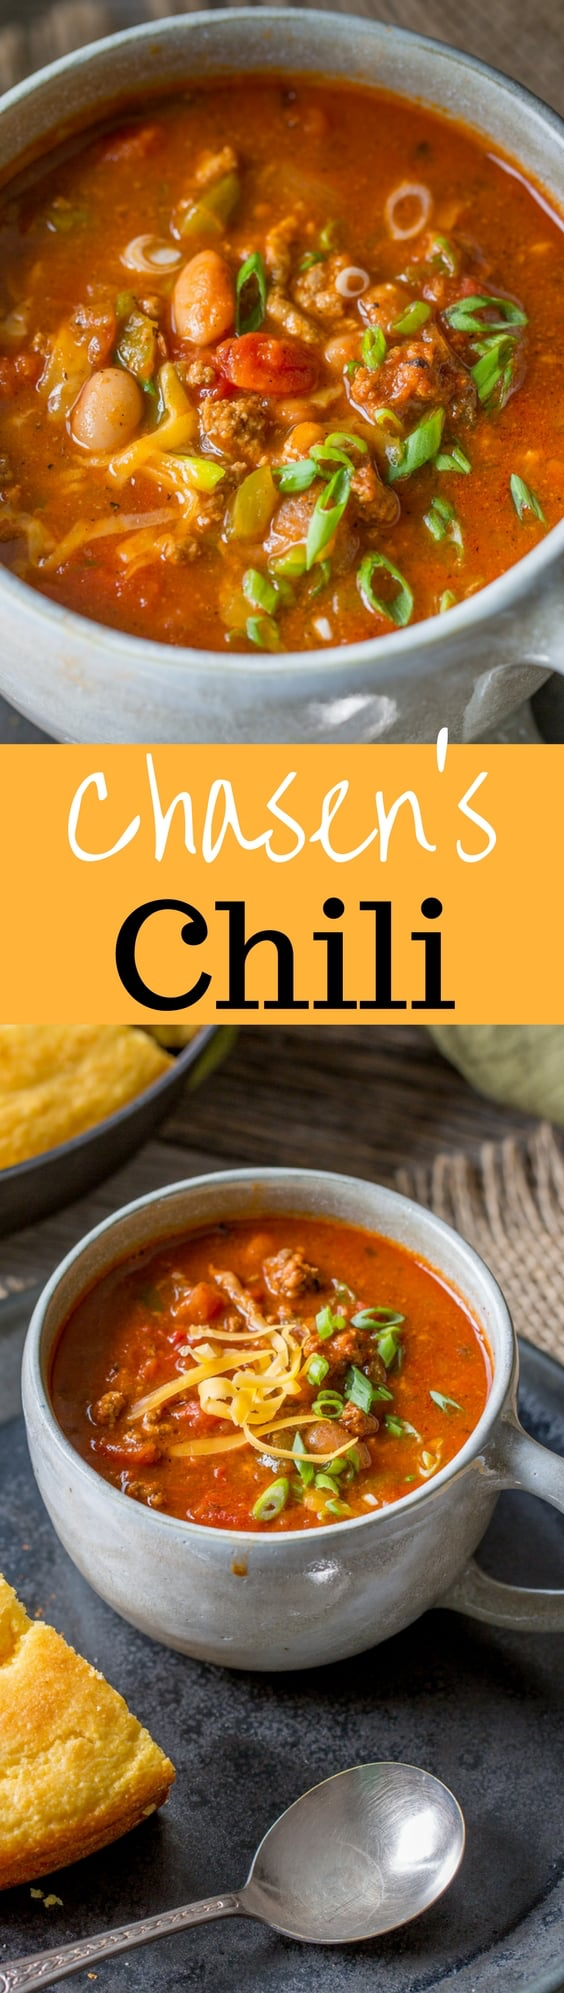 Chasen's Chili - adapted from the famous Chasen's Hollywood restaurant recipe which was a favorite with actors including Elizabeth Taylor and Richard Burton | www.savingdessert.com